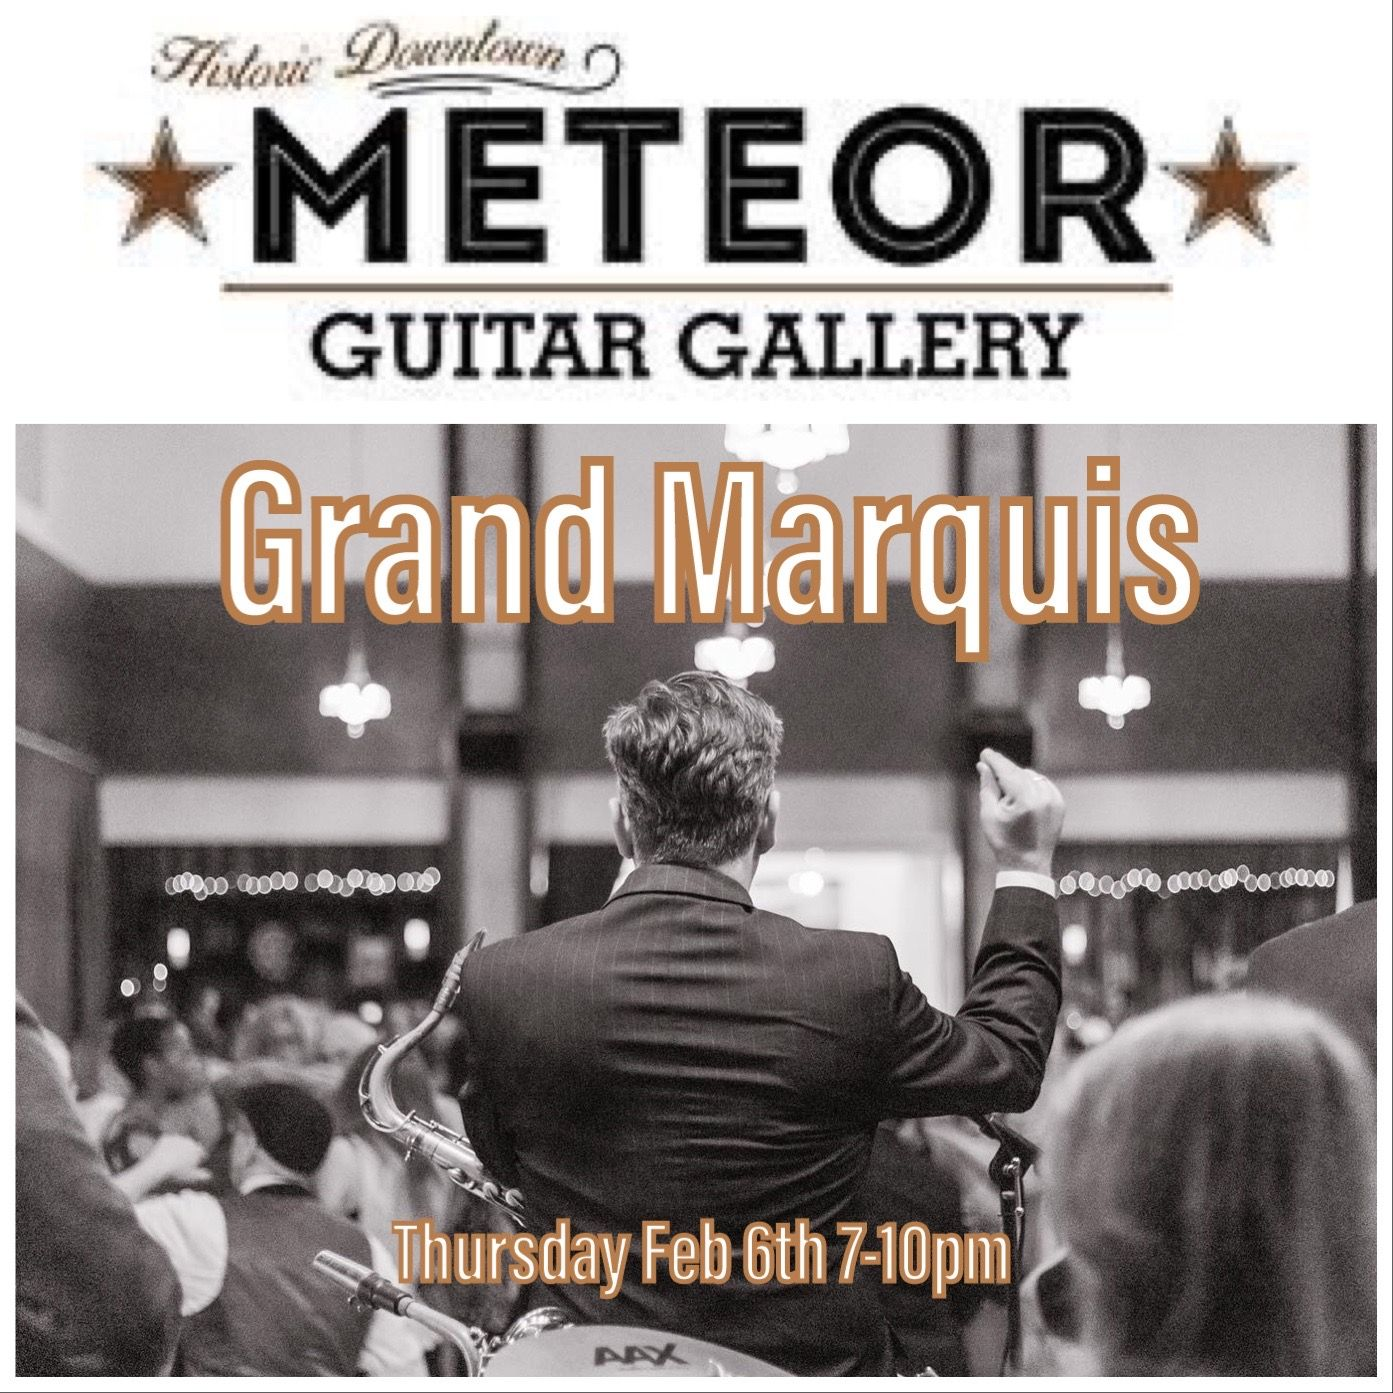 The Grand Marquis Thu Feb 6th Meteor Guitar Gallery Bentonville Ar In 2020 Live Music Events North West Grand Marquis